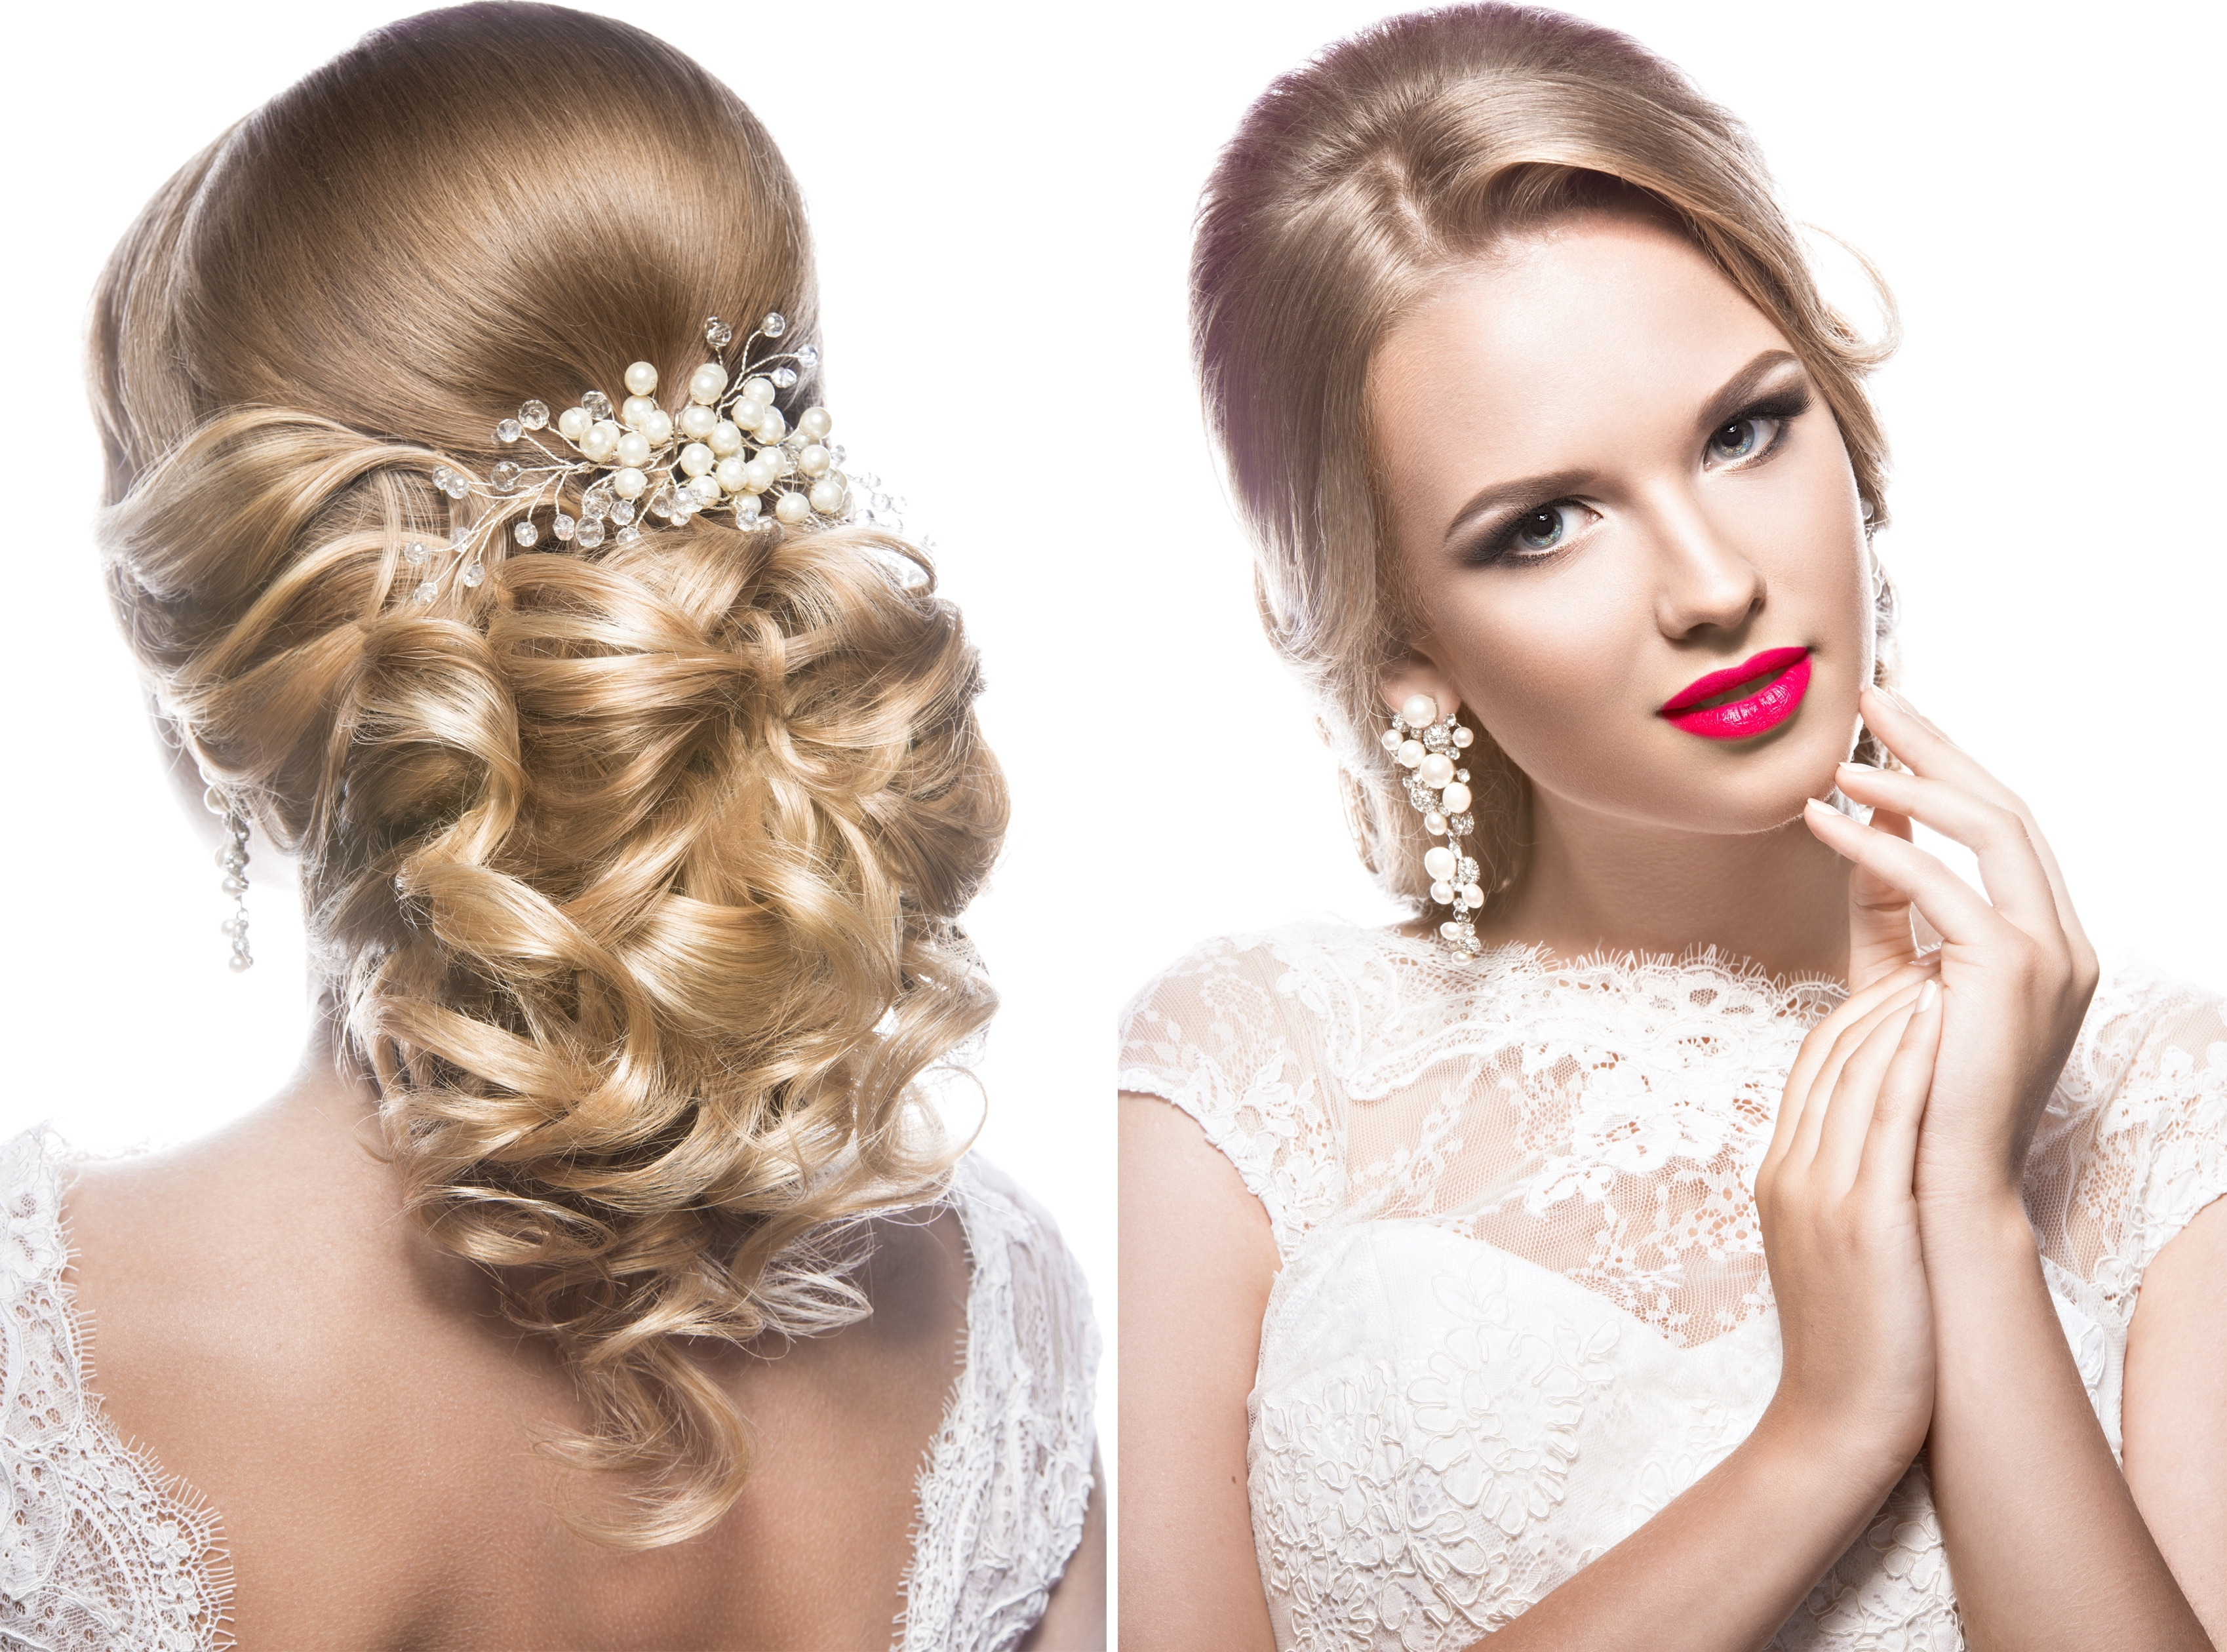 How To Get Beautiful Hair On Your Wedding Day With Hair Extensions Regarding Best And Newest Wedding Hairstyles For Long Hair Extensions (View 2 of 15)